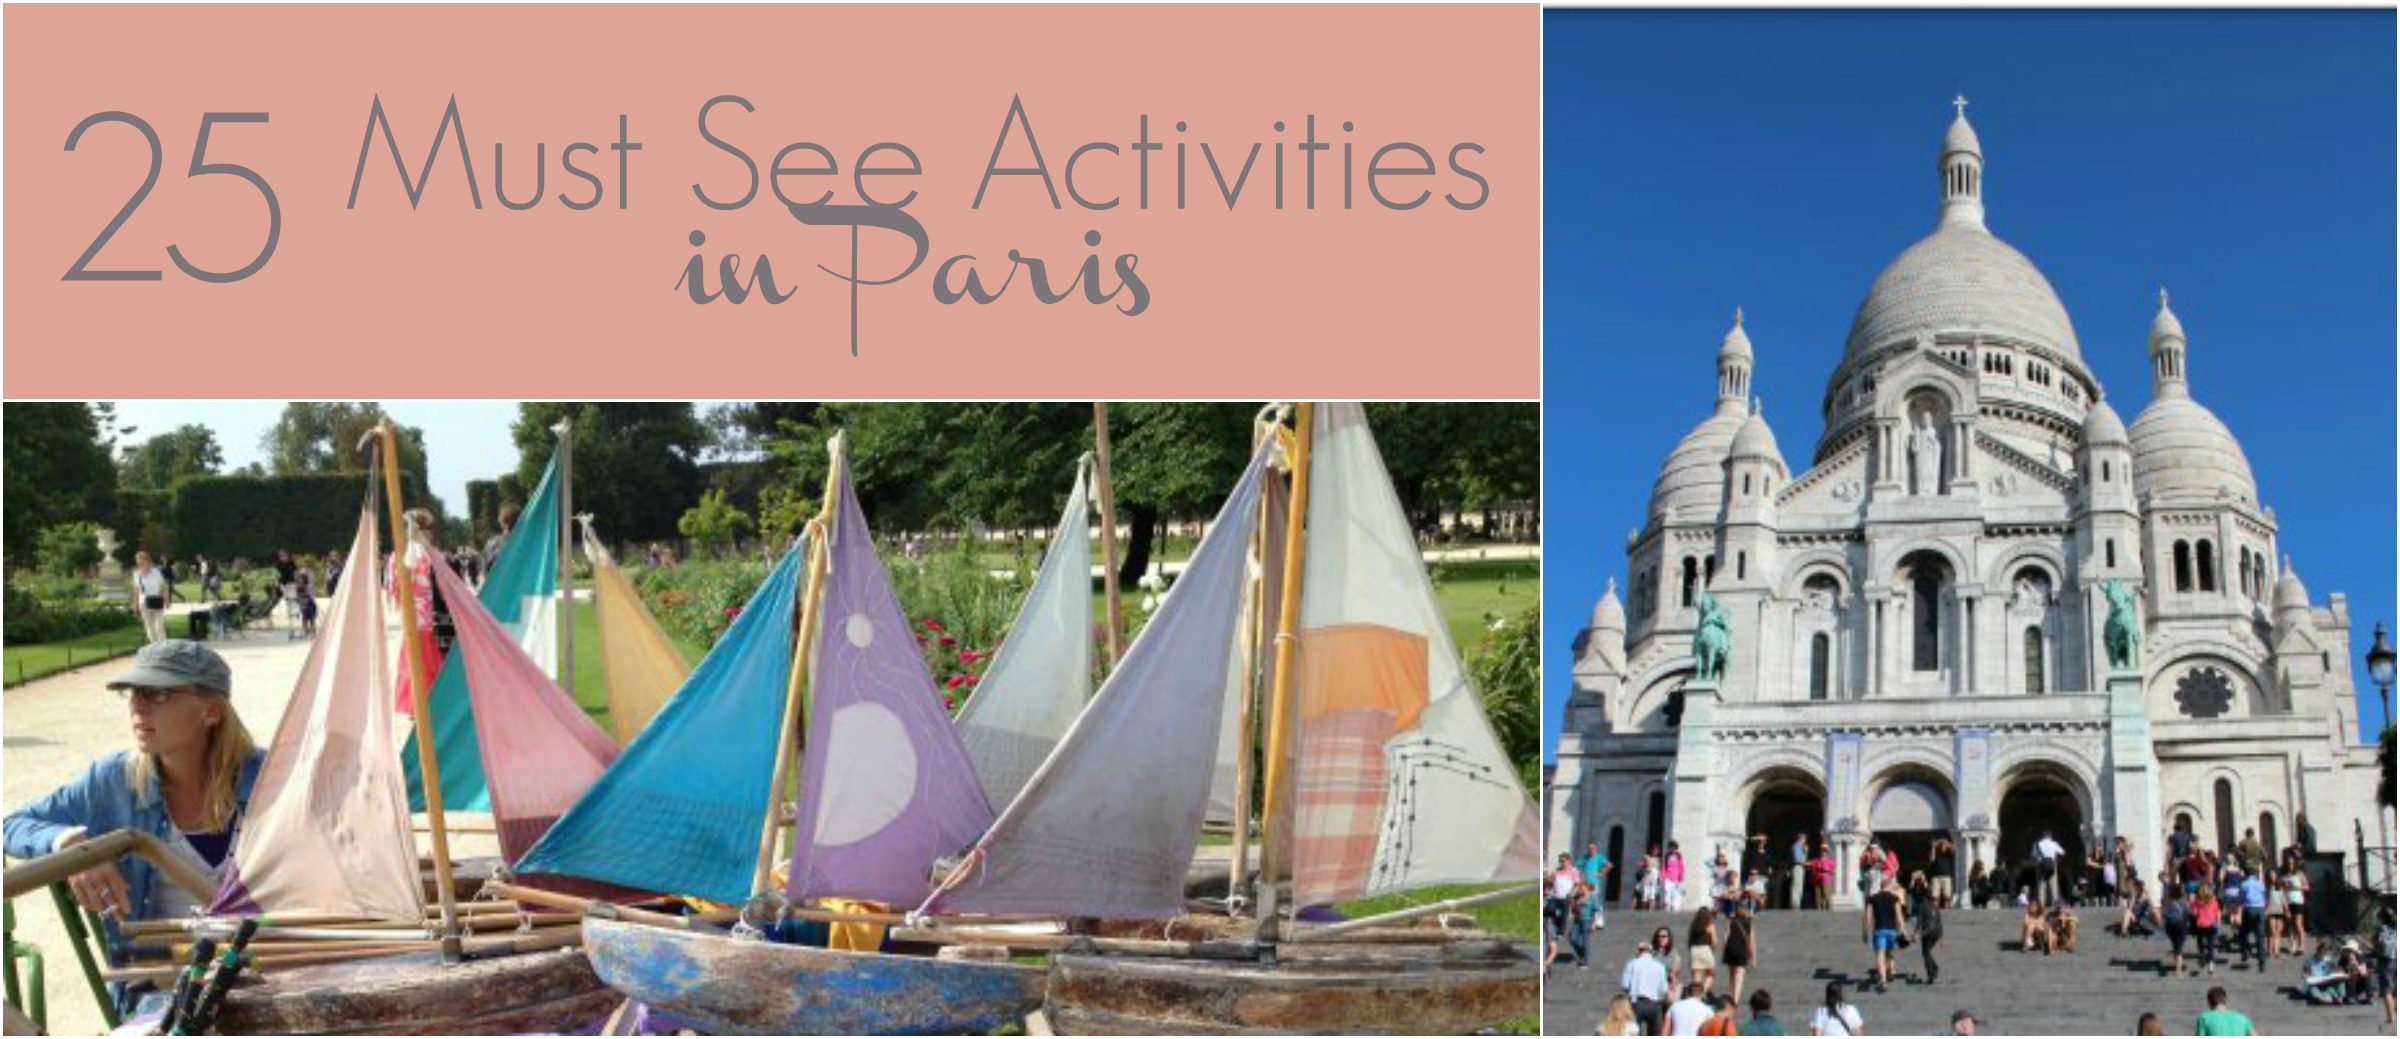 25 must see activities in paris paris nyc single mom for Must see nyc attractions